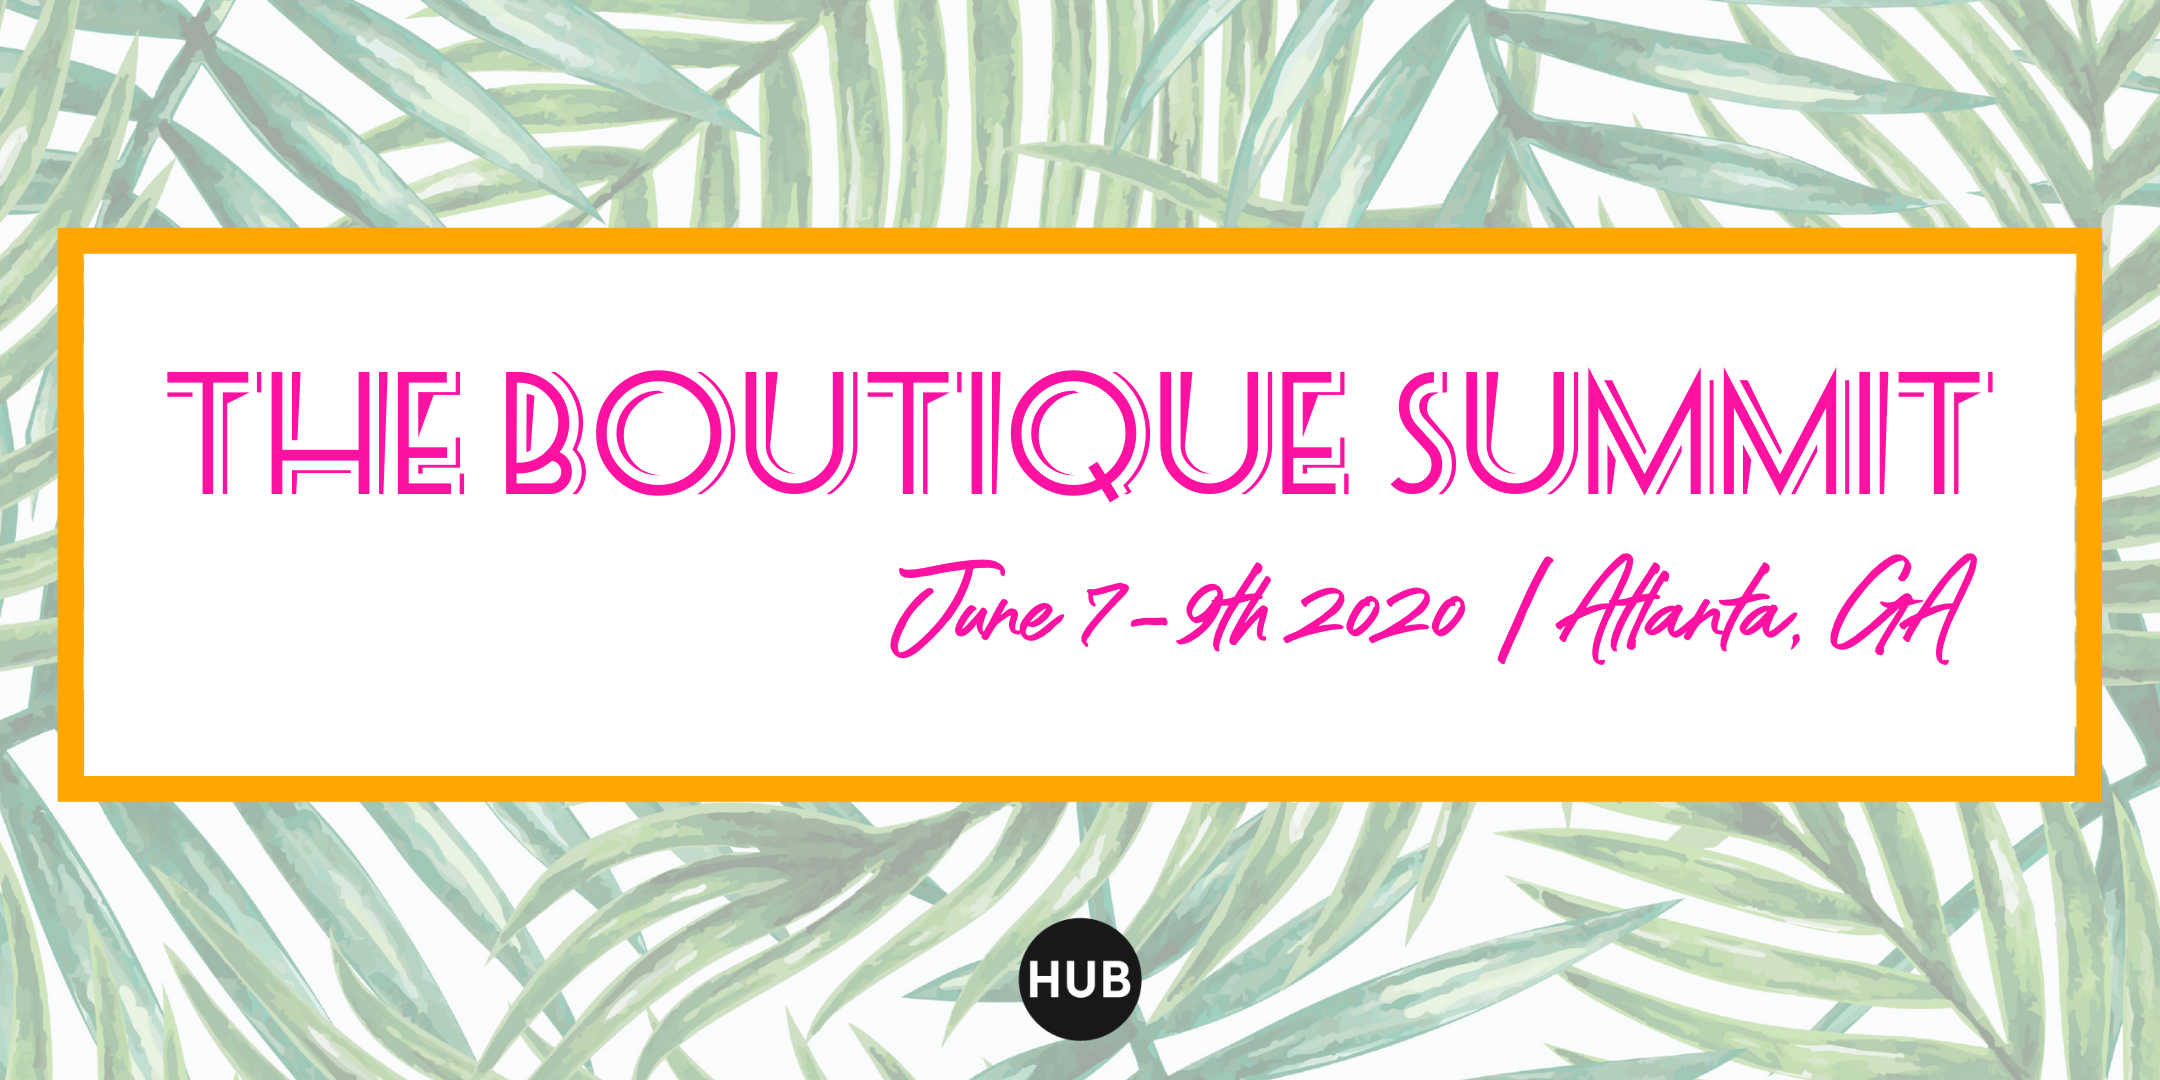 The Boutique Summit 2020